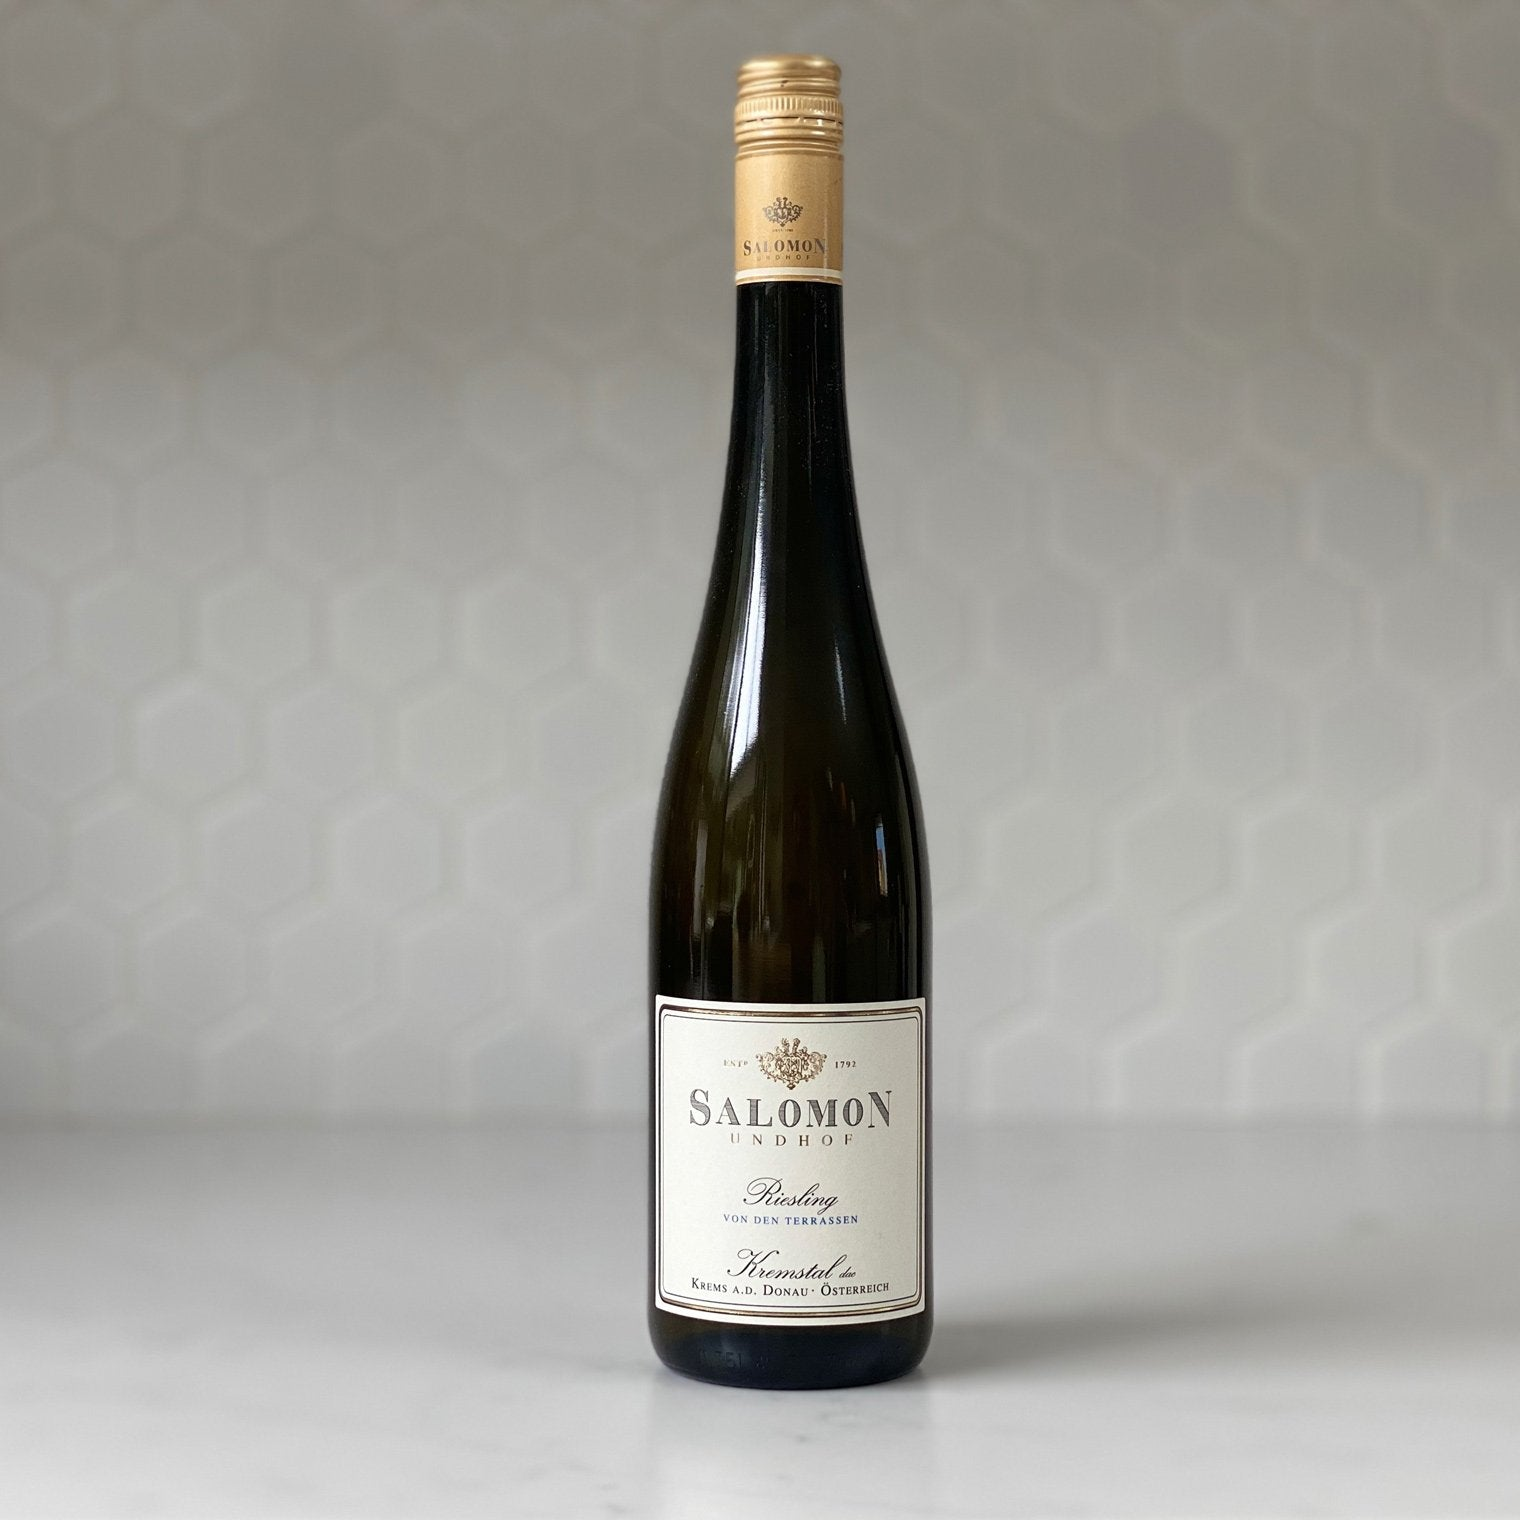 SALOMON UNDHOF estate riesling kremsal 2018